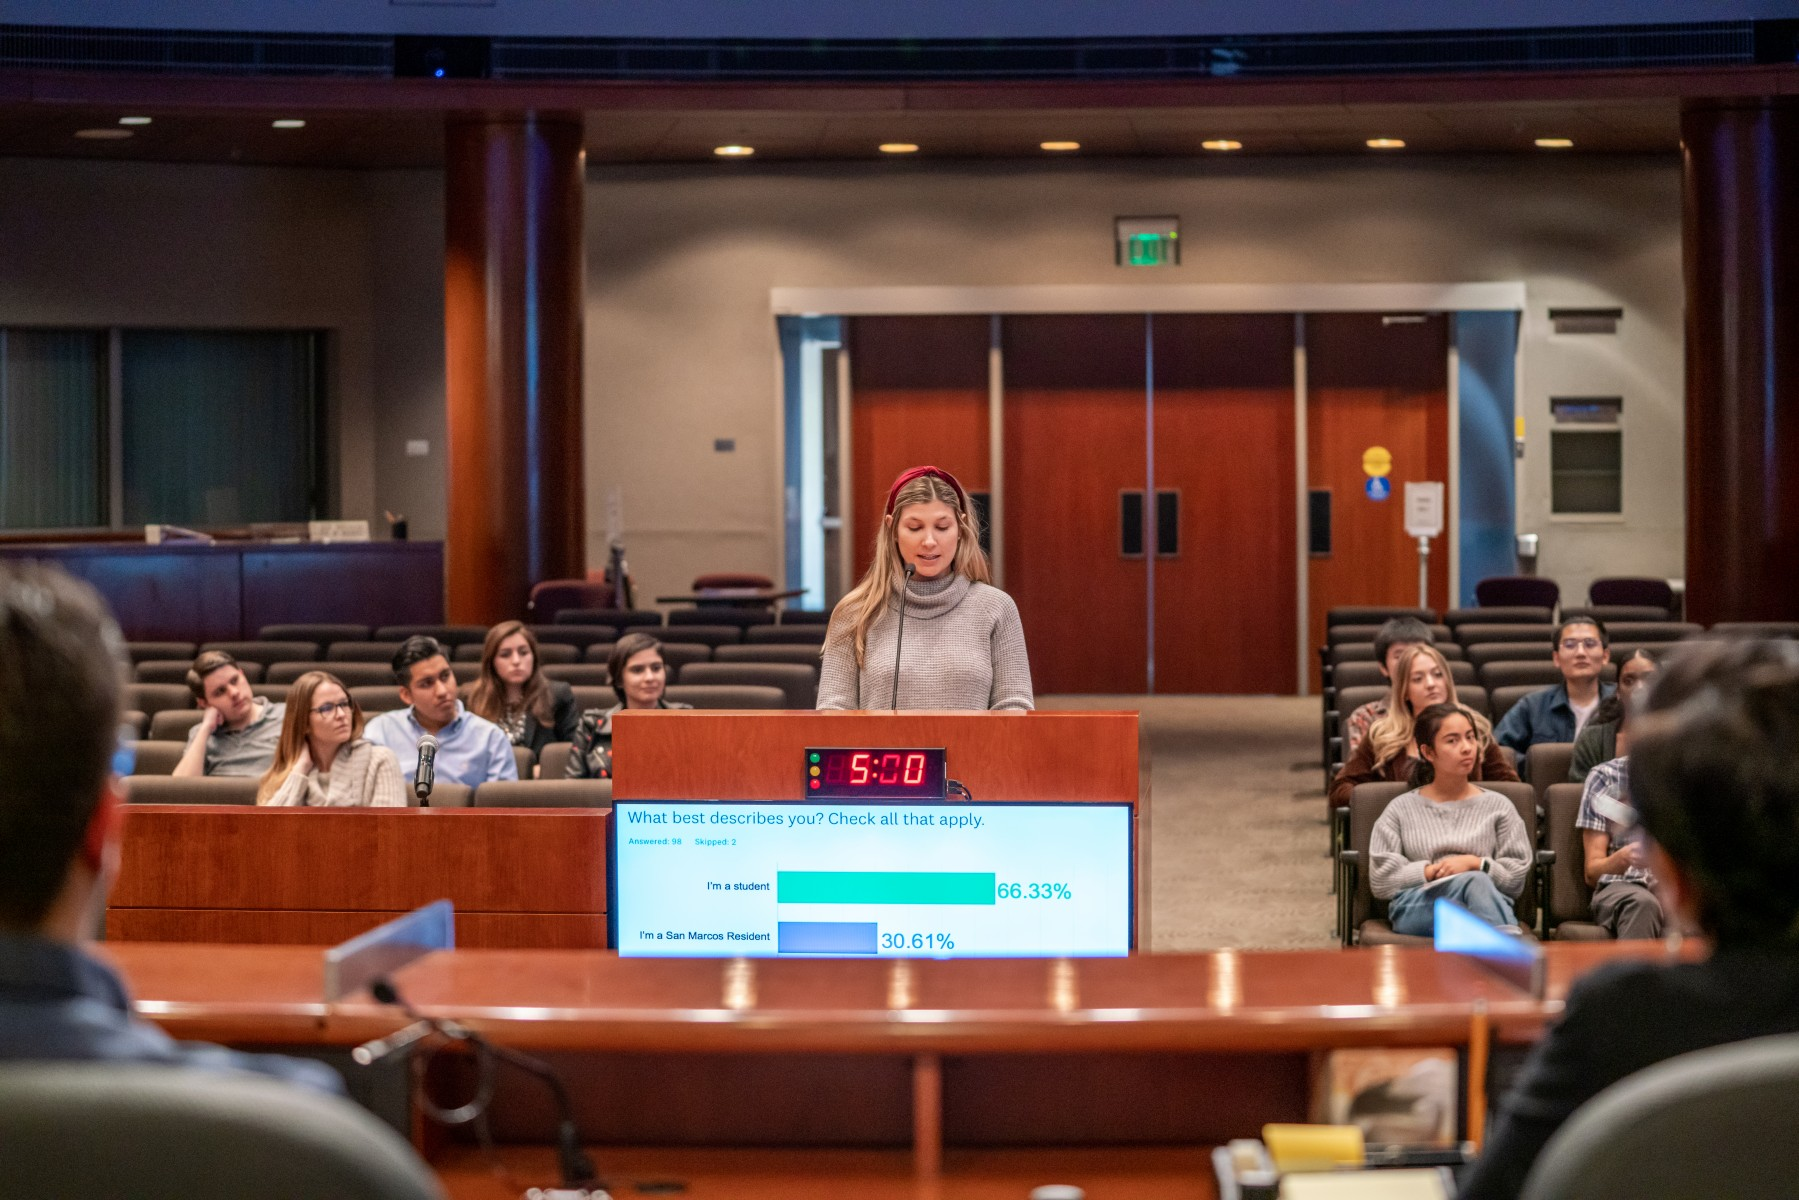 Art, Media and Design student Mackenzie Underwood addresses San Marcos city officials at City Hall during a presentation last month as part of the Democracy in Action program. Photo by Chandler Oriente